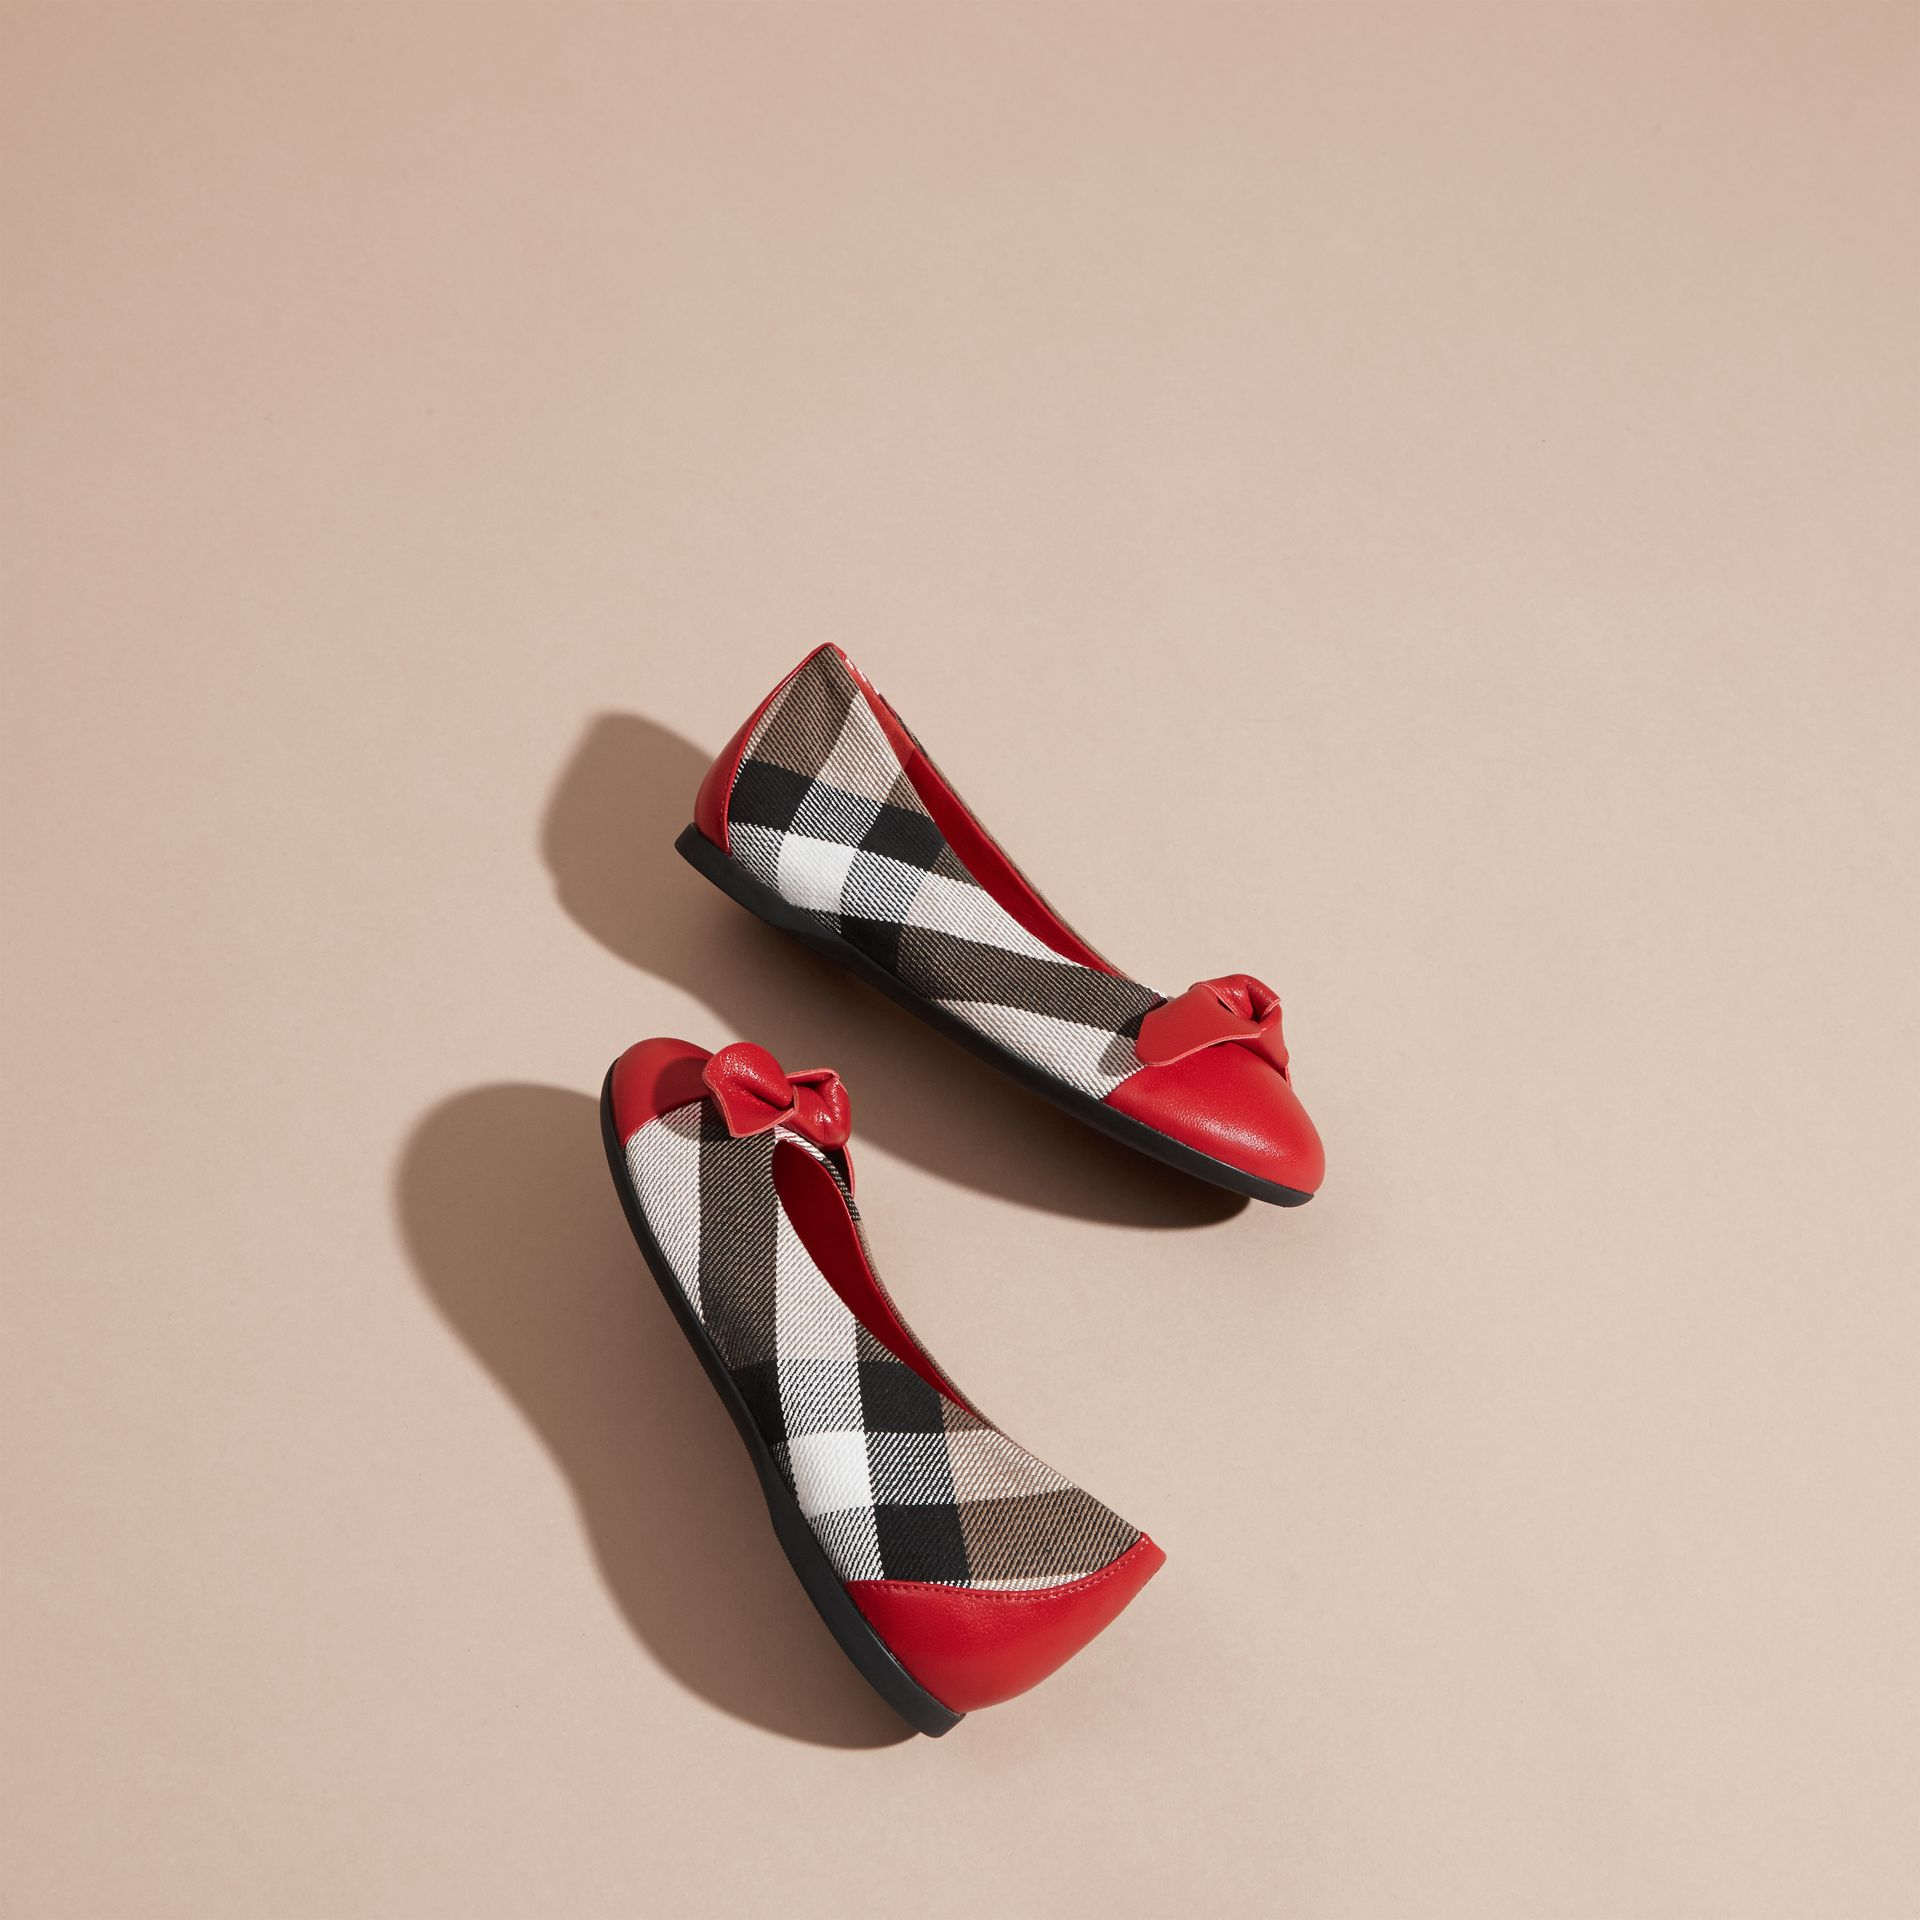 Ballerines en cuir et coton House check (Rouge Parade) - Fille | Burberry - photo de la galerie 4